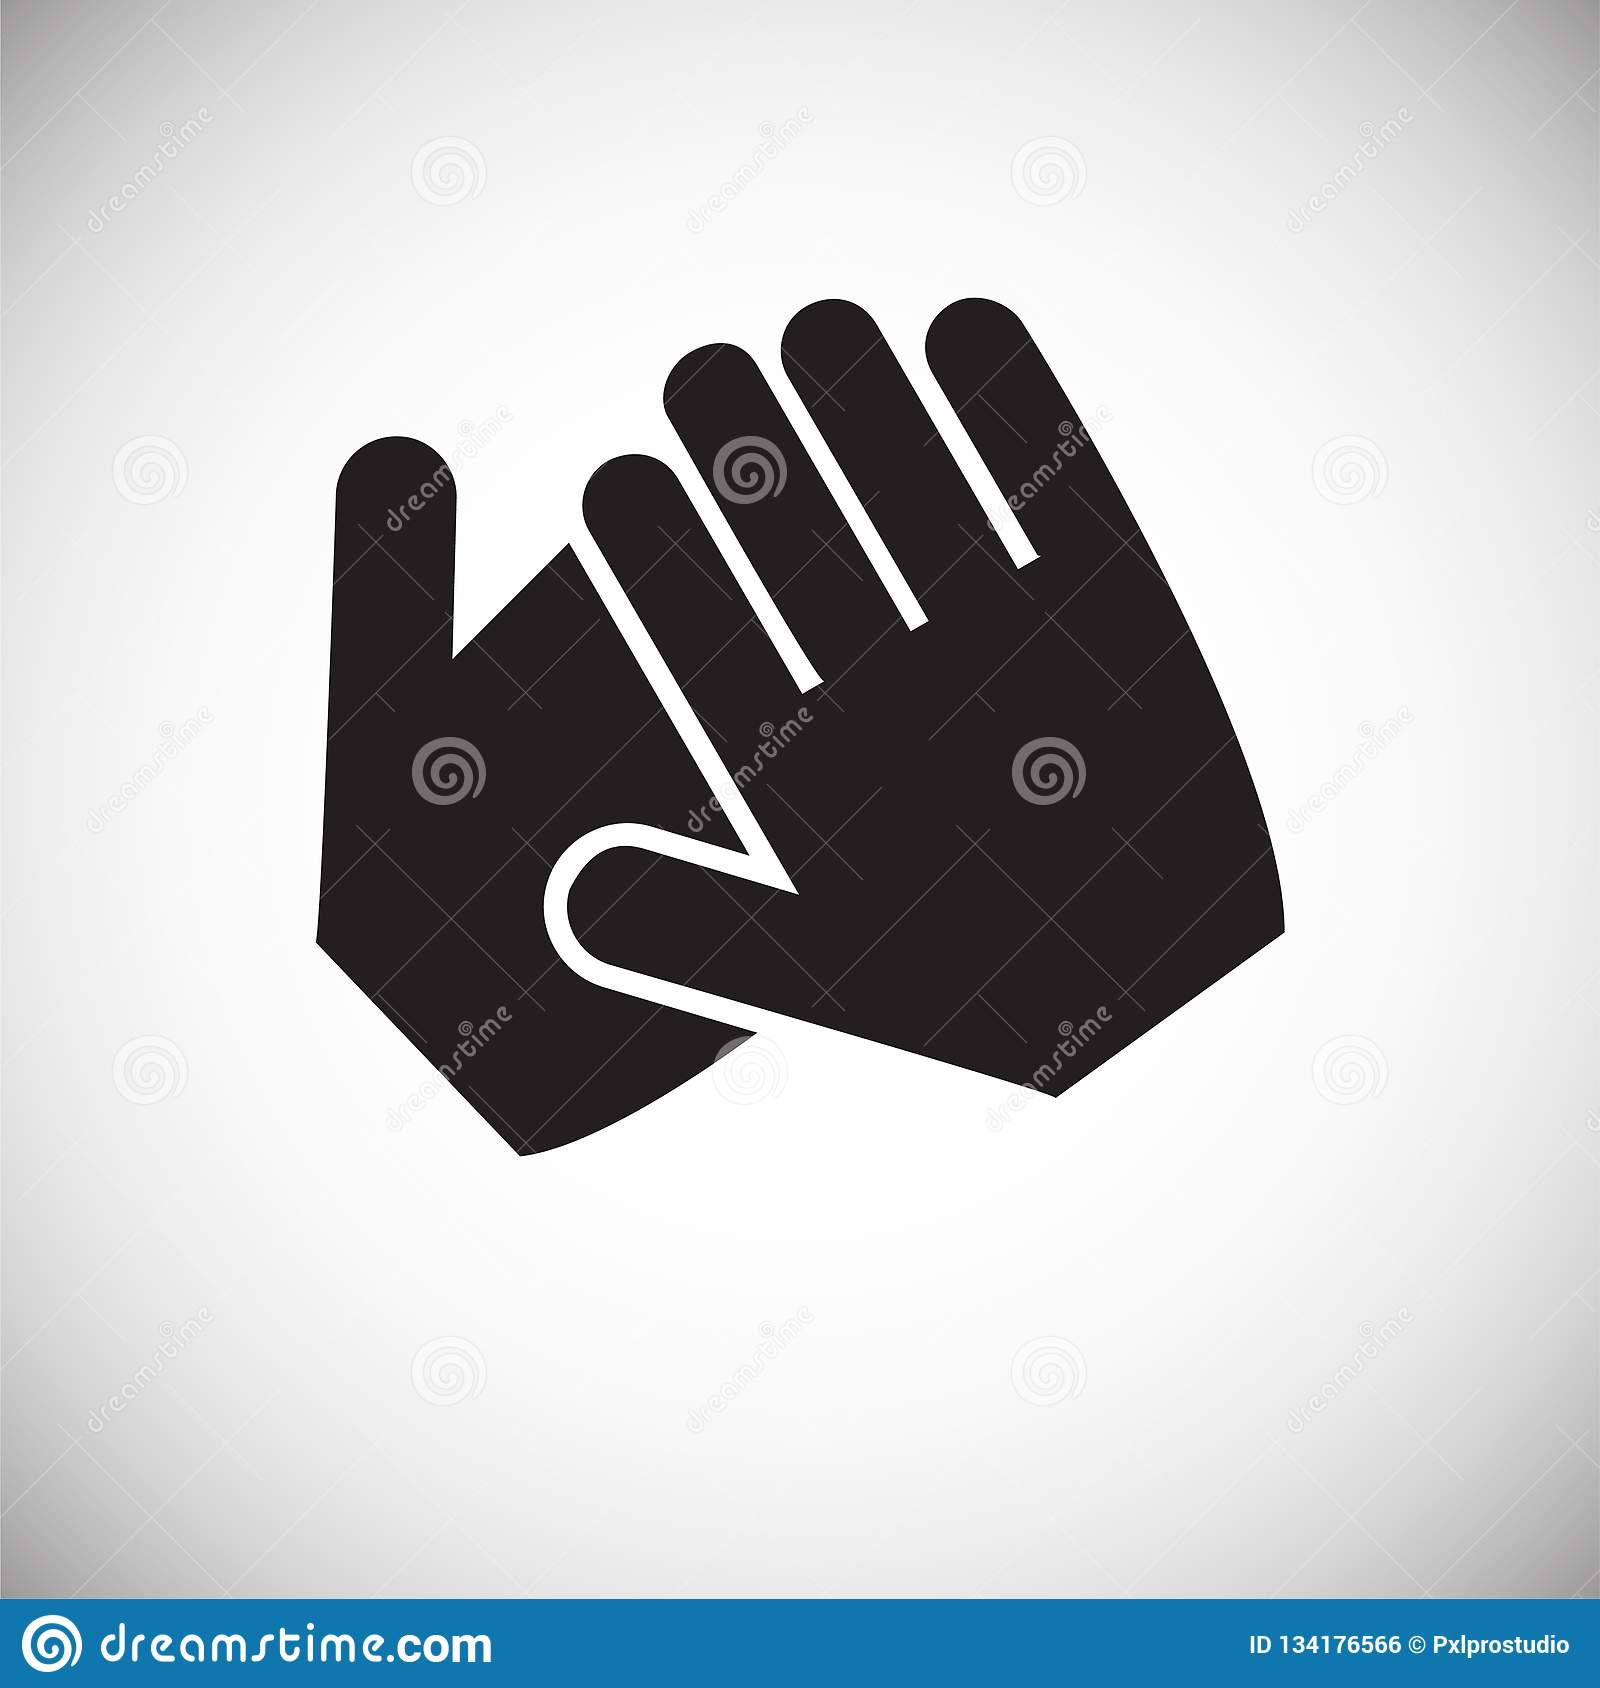 Hand shaking icon on white background for graphic and web design, Modern simple vector sign. Internet concept. Trendy symbol for